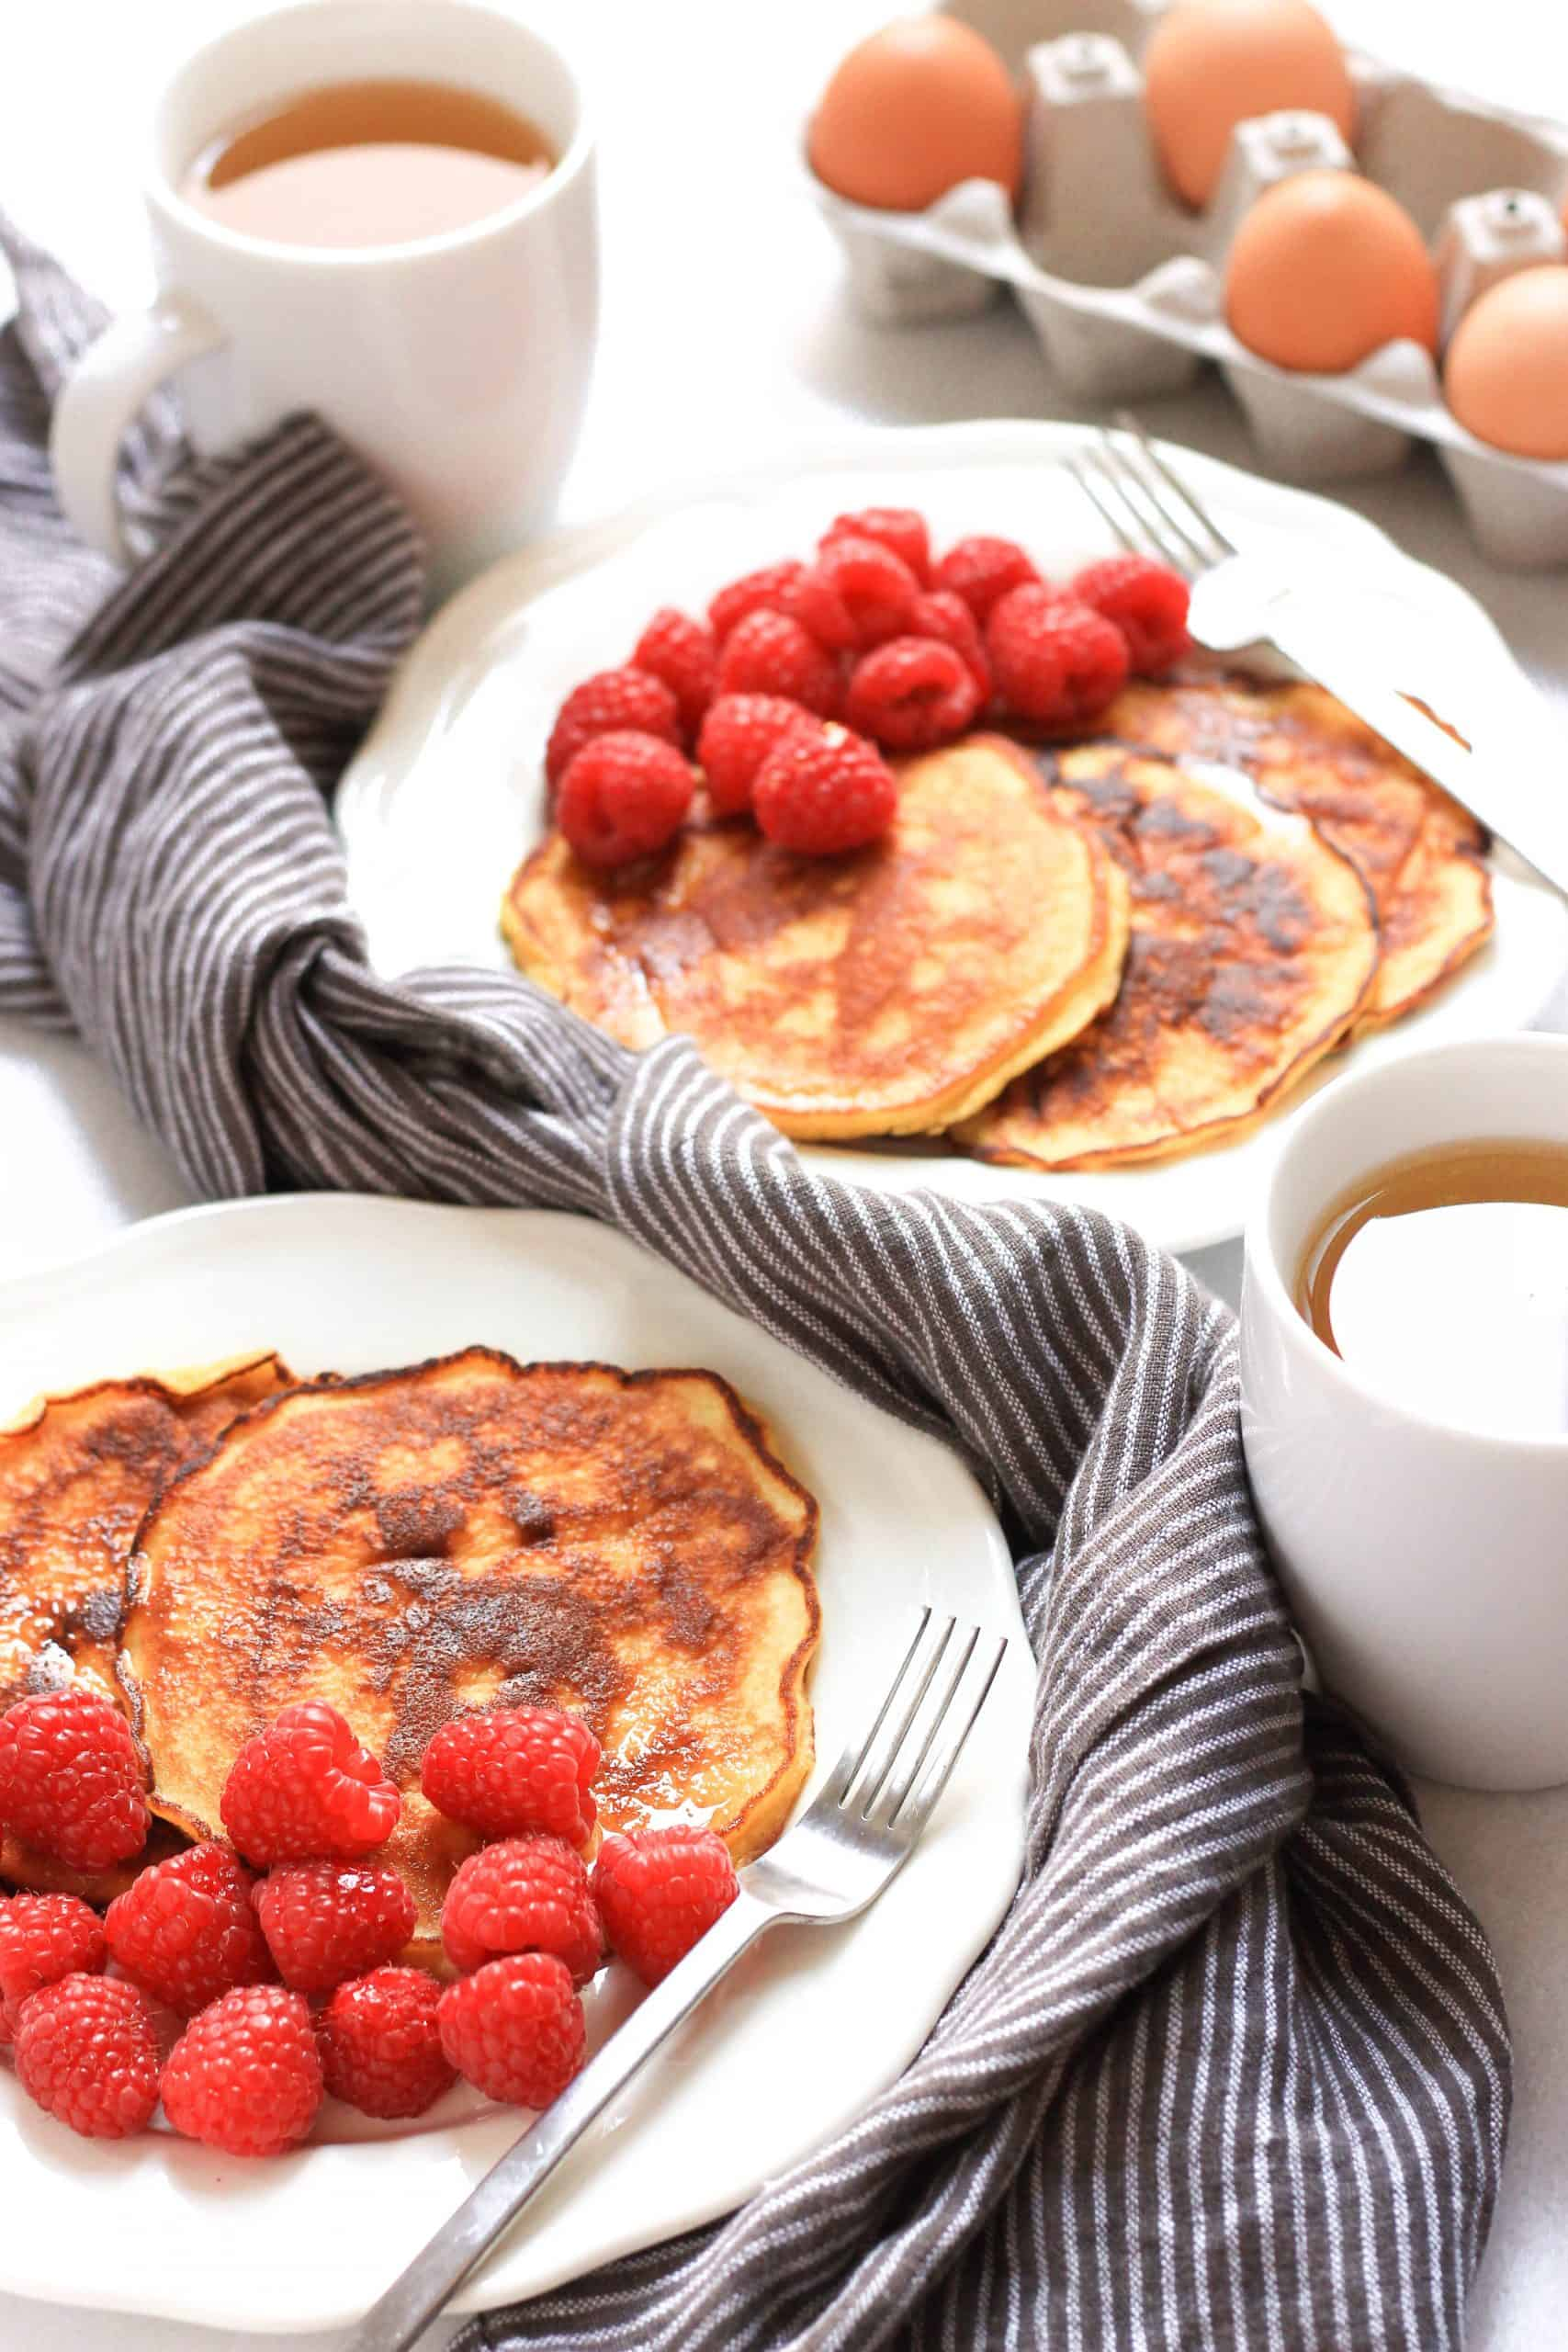 Plates with pancakes and fruits and cups of tea.